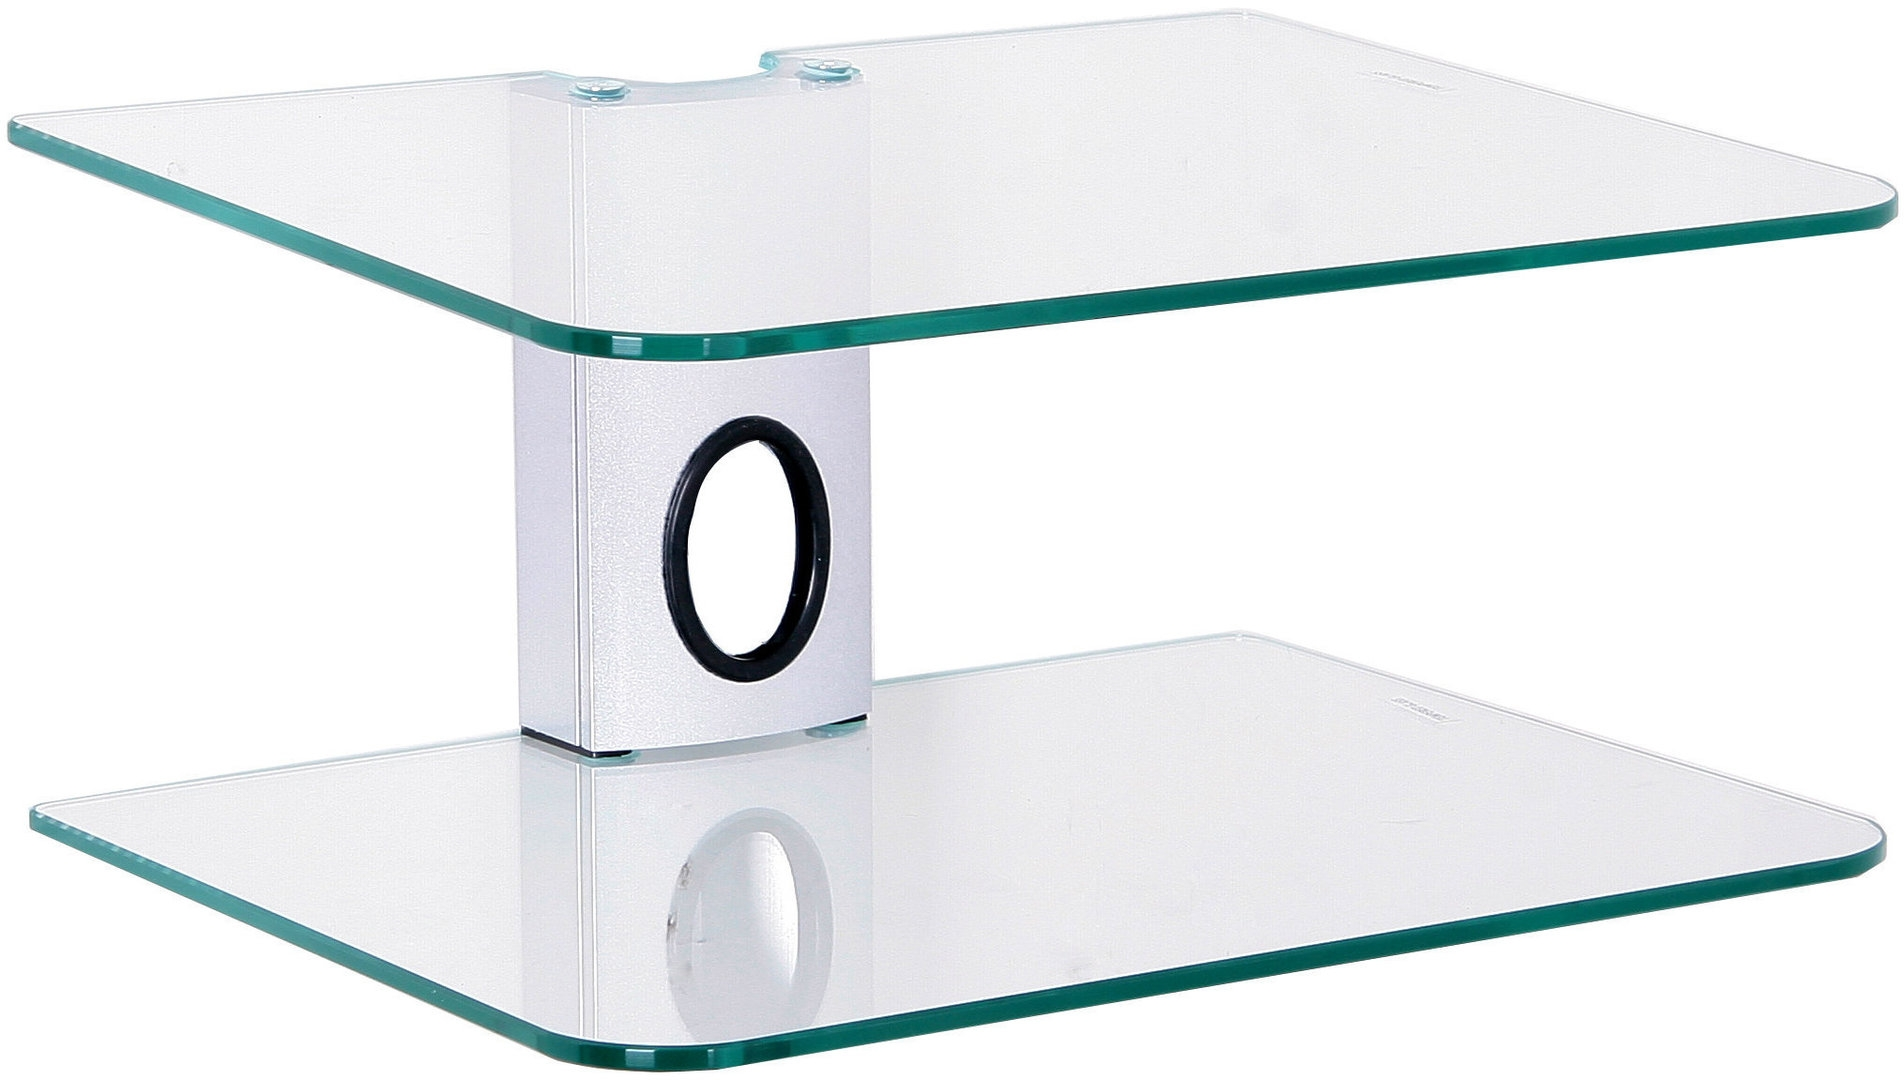 Dvd Mount 2 Clear Floating Glass Shelves Dvd Bracket Silver With Regard To Clear Glass Floating Shelves (Image 5 of 15)